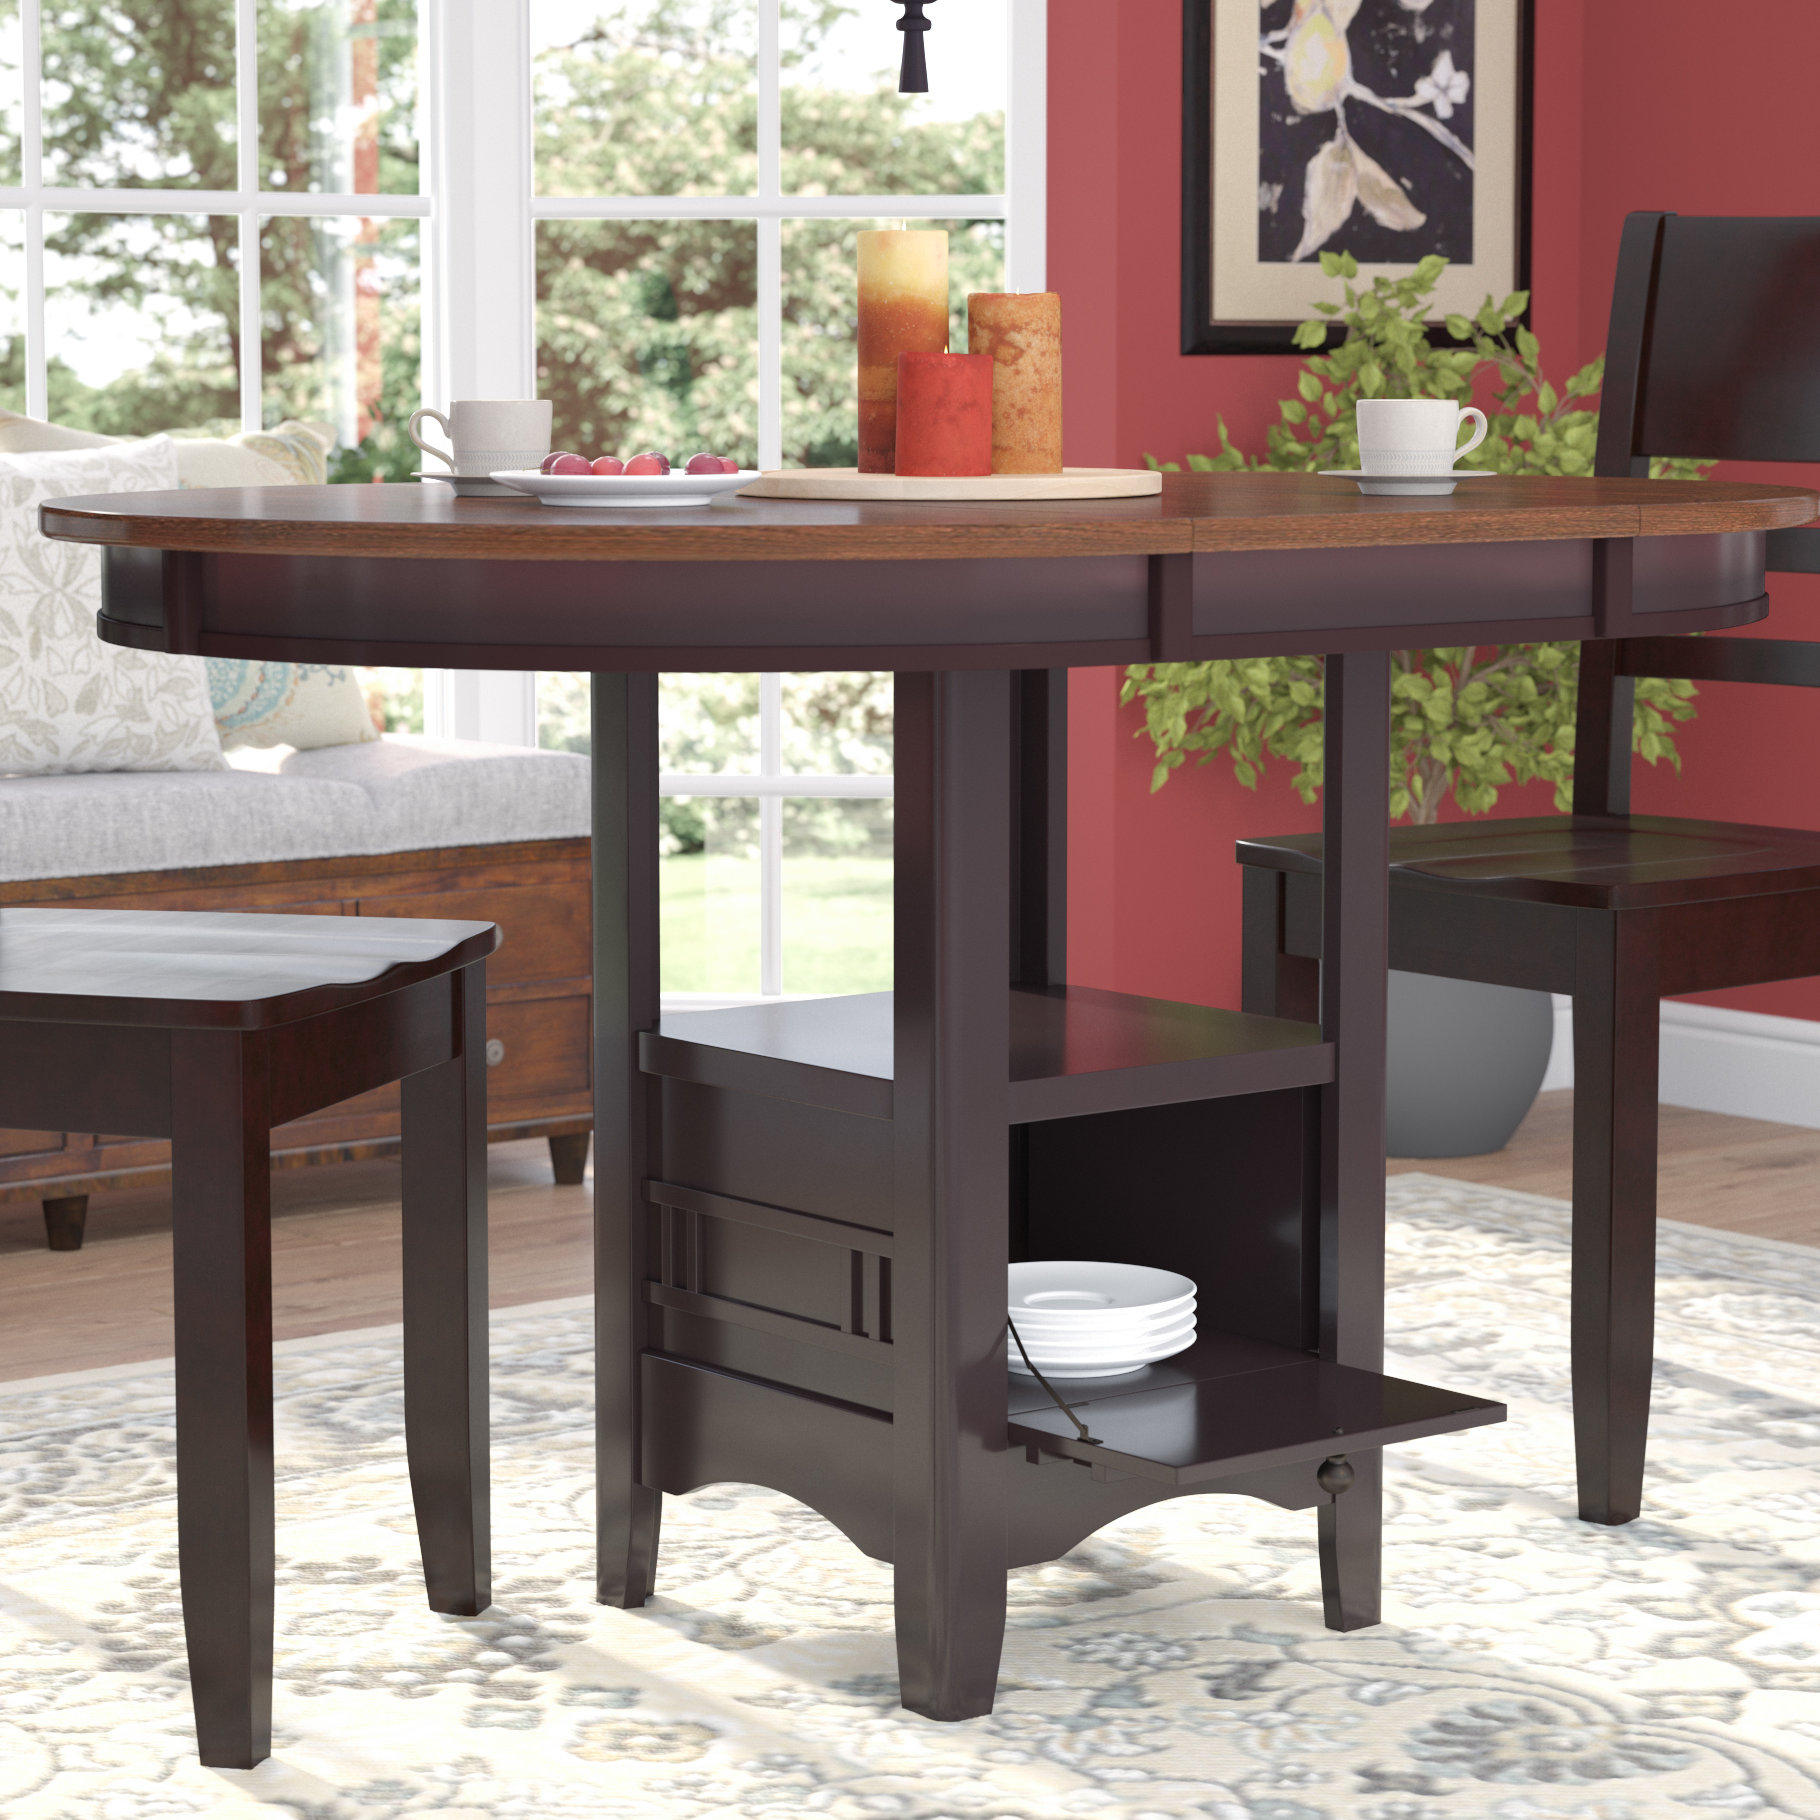 Sinkler Counter Height Drop Leaf Dining Table Inside Most Up To Date Anette 3 Piece Counter Height Dining Sets (View 5 of 20)